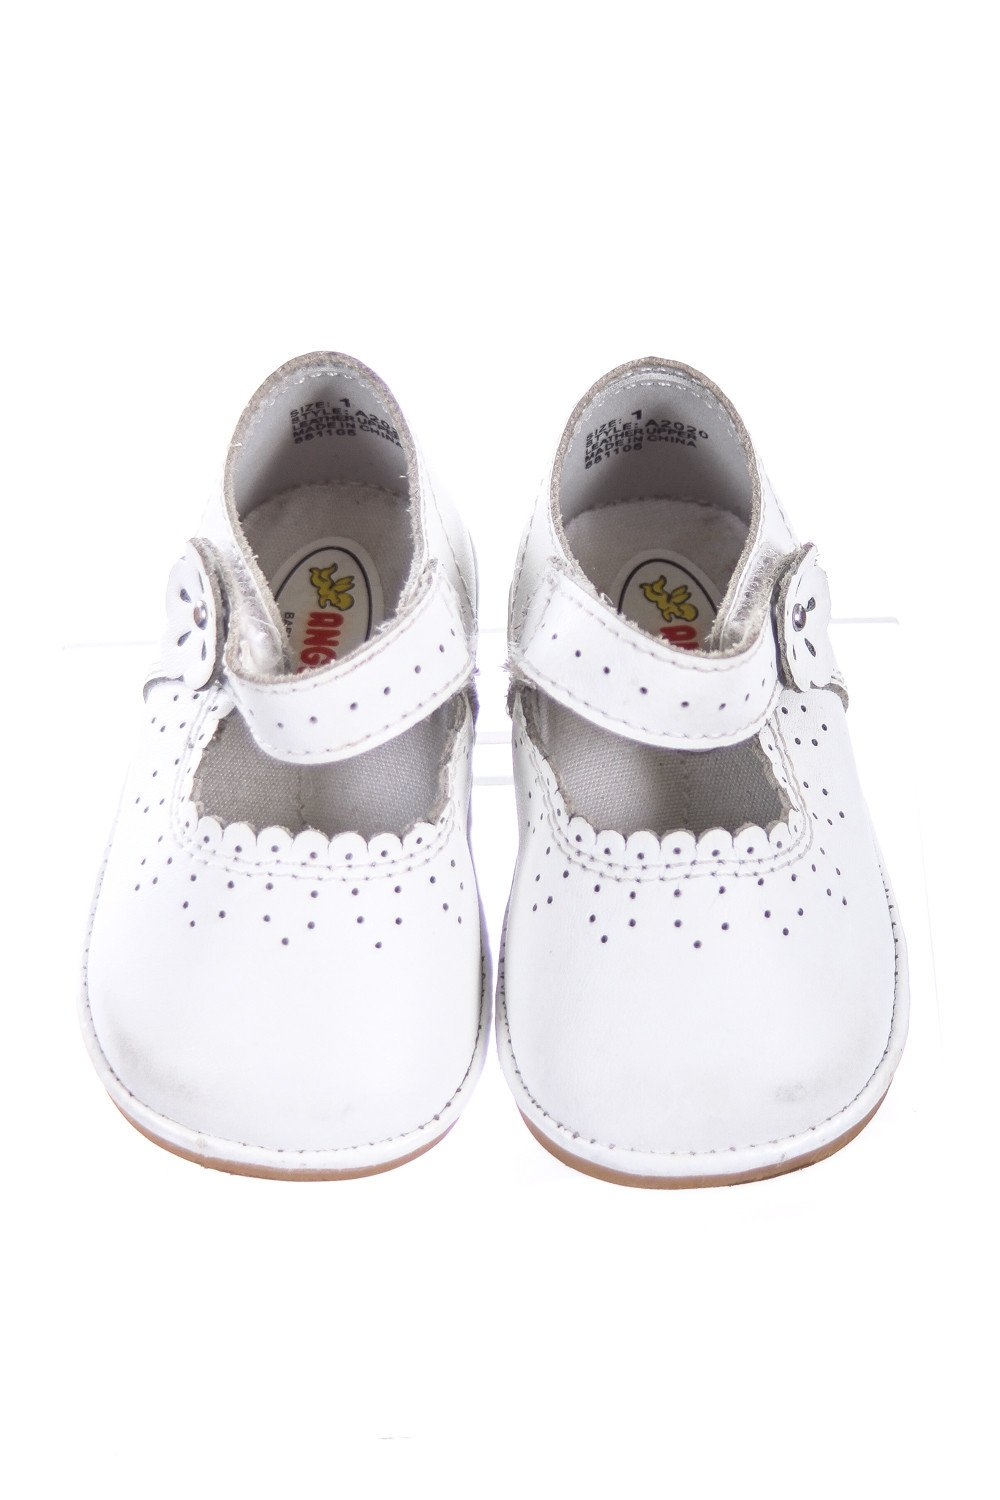 sizes: size 1 shoe, size 2 shoe, size 3 shoe, size 4 shoe, size 5 shoe, size 6 shoe The stylish Owen Oxford Shoe from Robeez makes for a great first-time shoe for your little guy. Features flexible soles and cushioned foam insoles for protection and comfort.